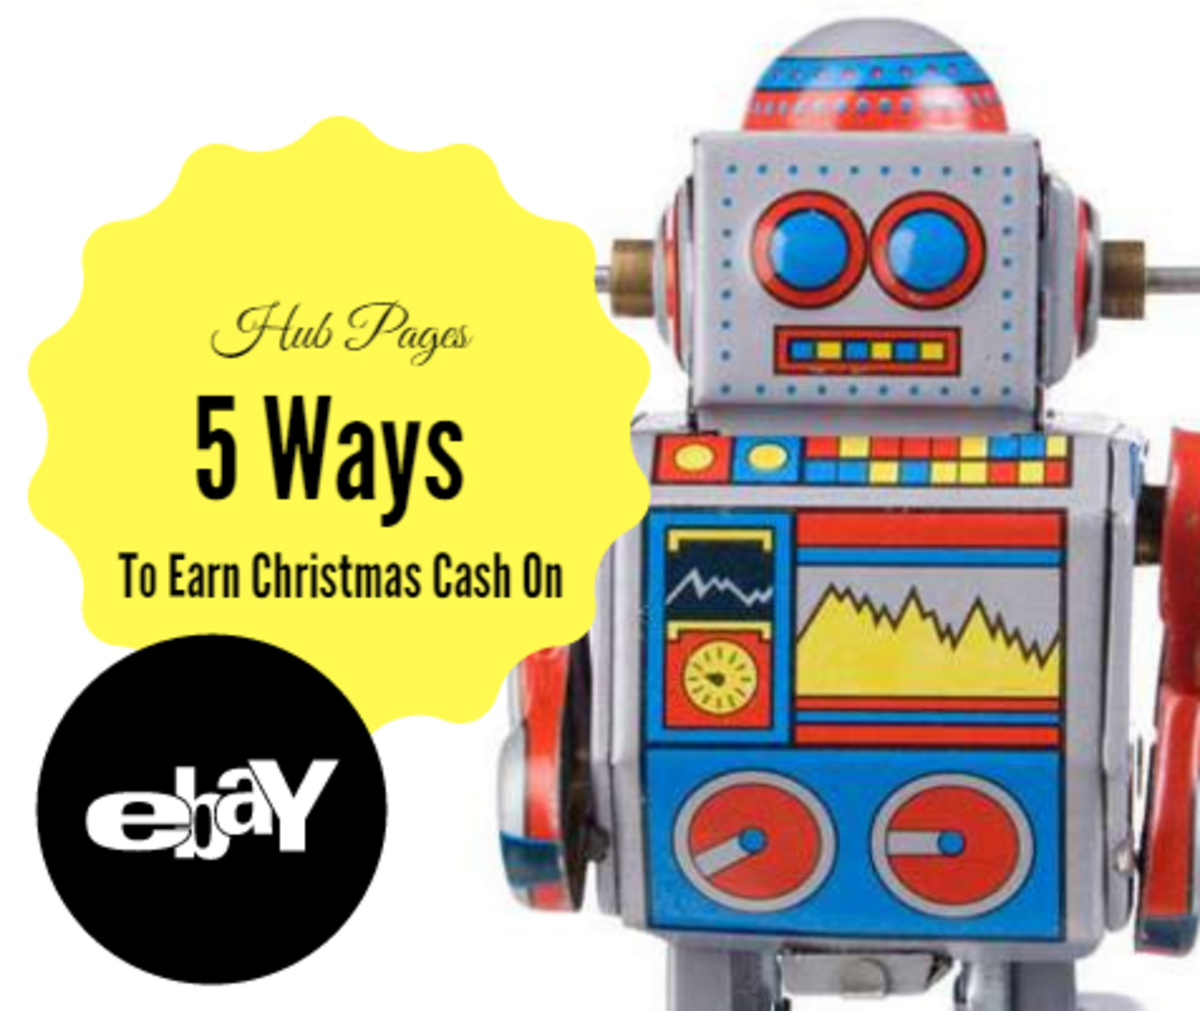 5 Ways to Earn Christmas Cash on Ebay